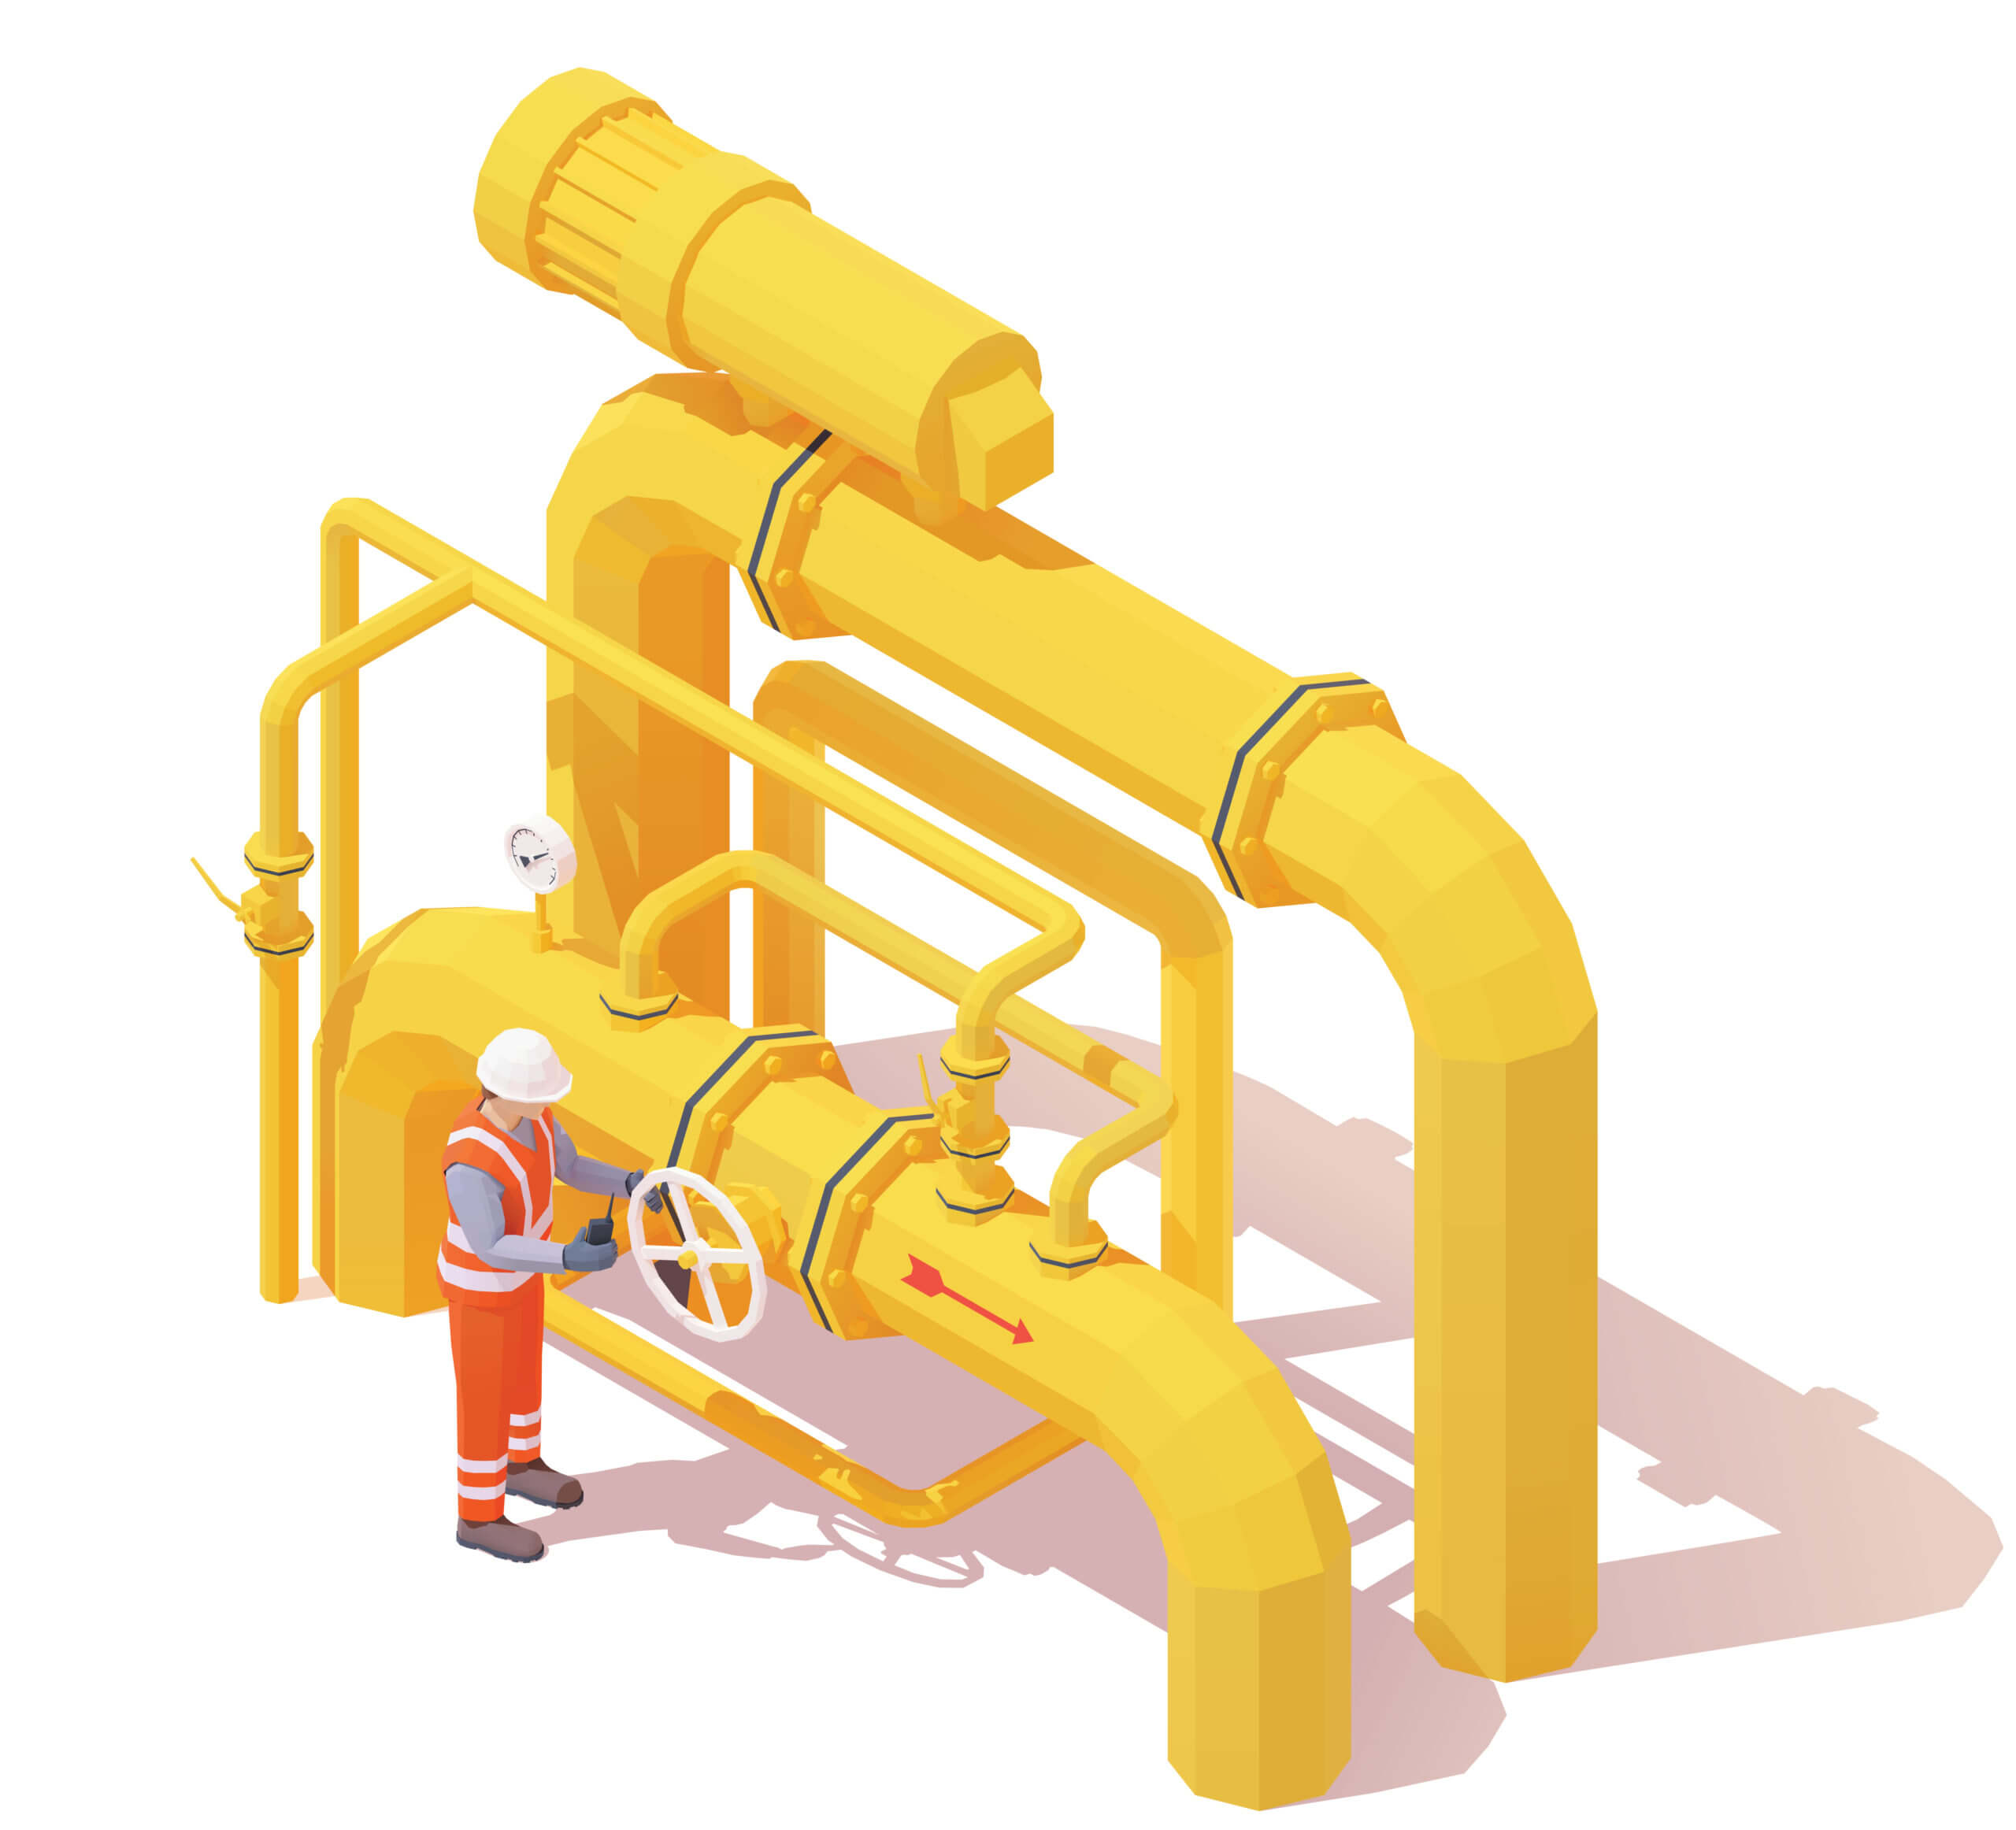 engineer working on fluid piping system